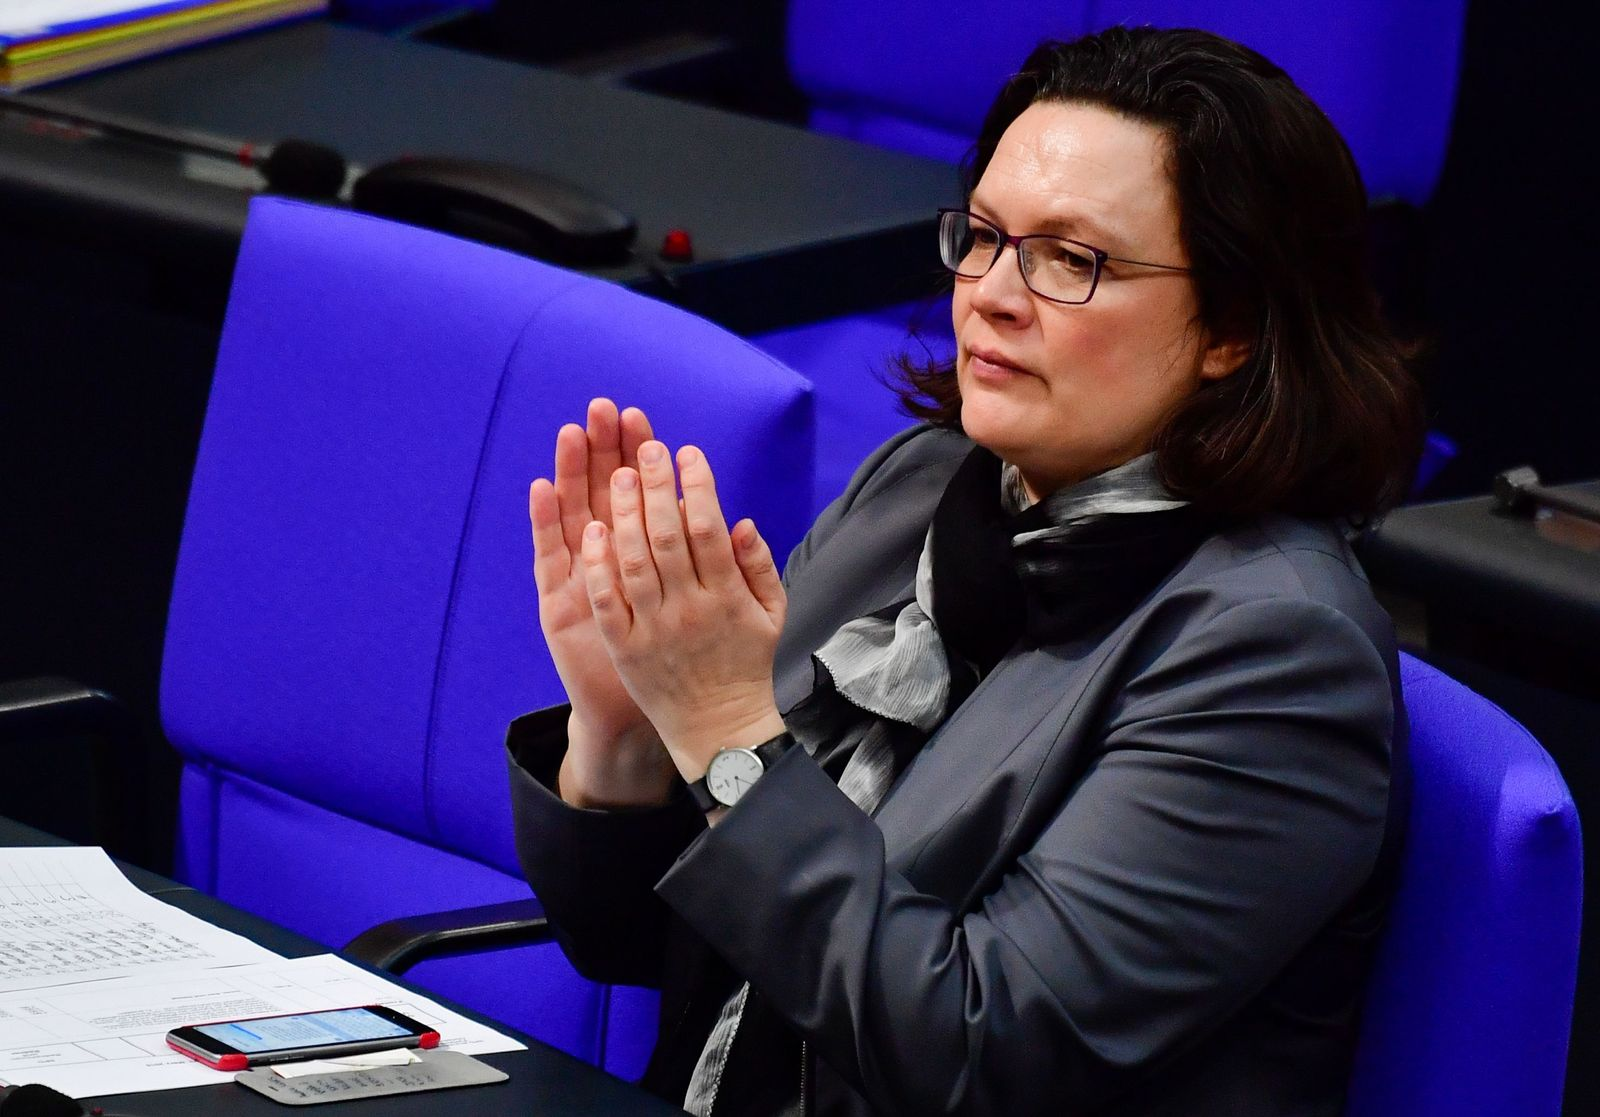 GERMANY-PARLIAMENT-GOVERNMENT